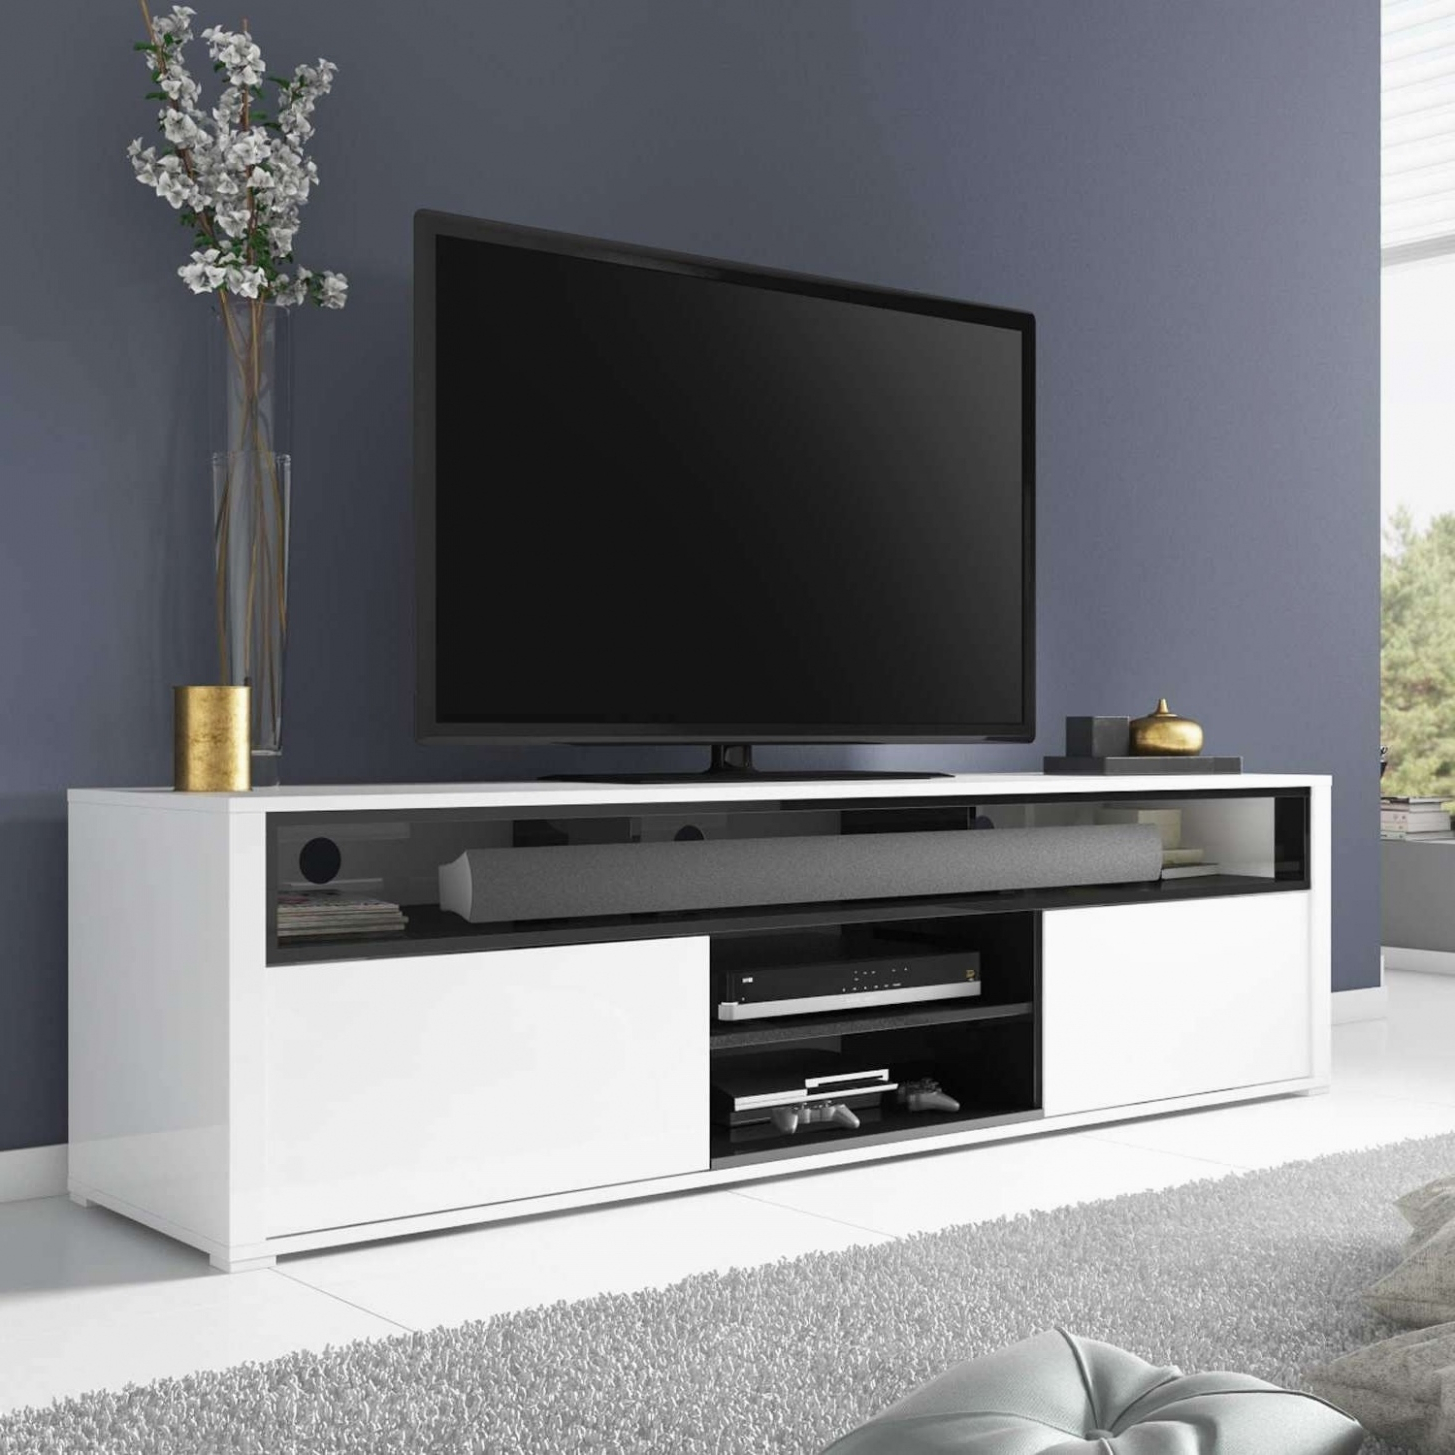 White Tv Cabinets With Preferred White Tv Stand With Drawers Simplistic 20 The Best Tv Cabinets Gloss (View 20 of 20)